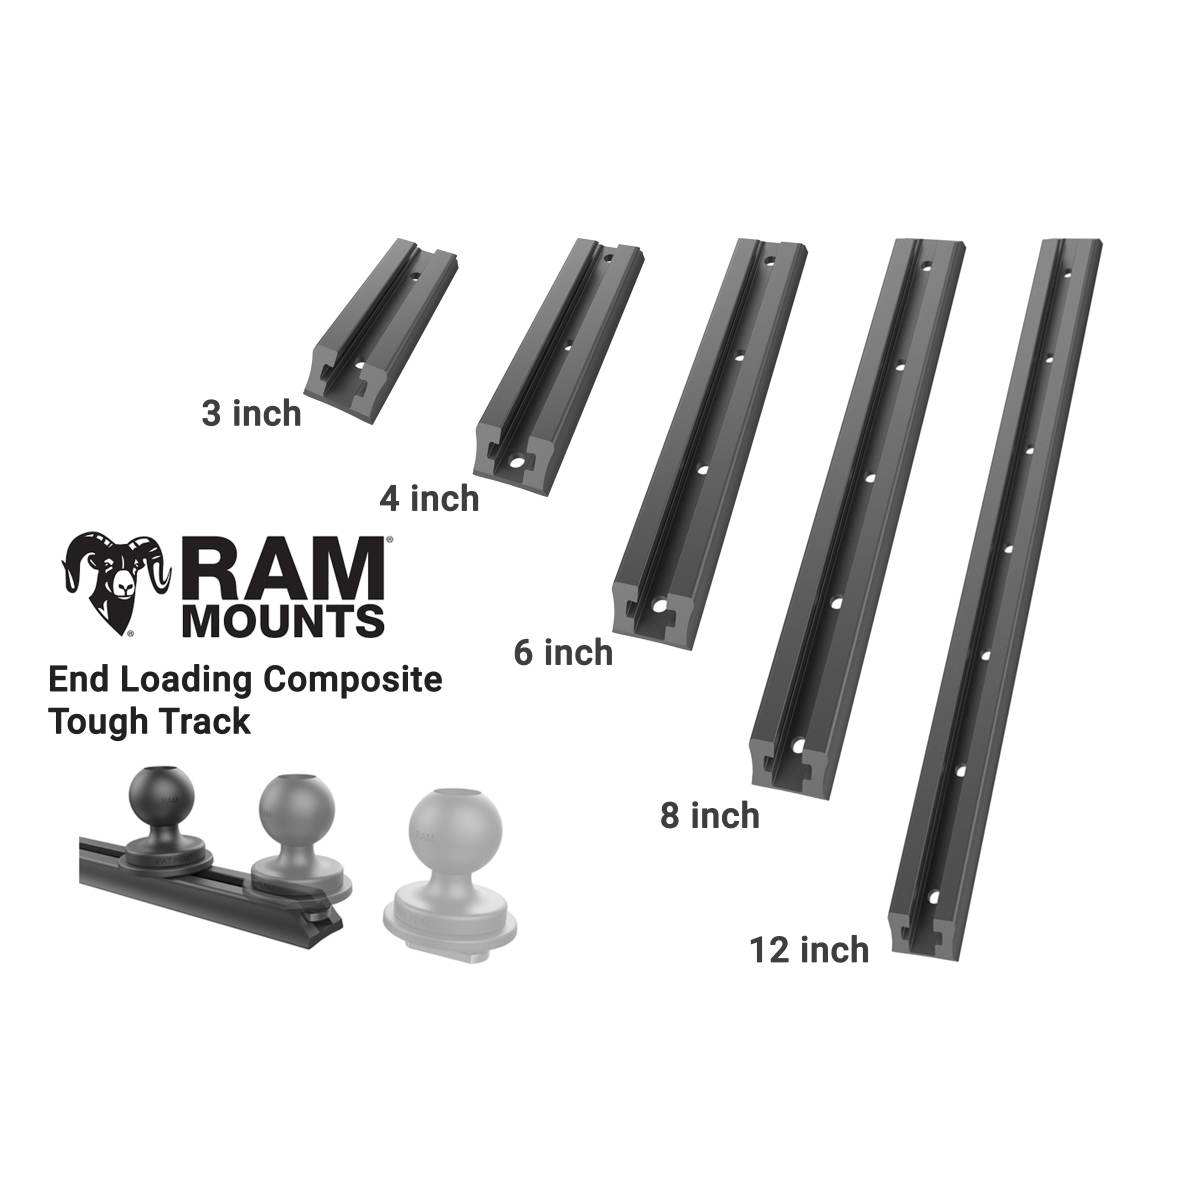 ram mounts tough track